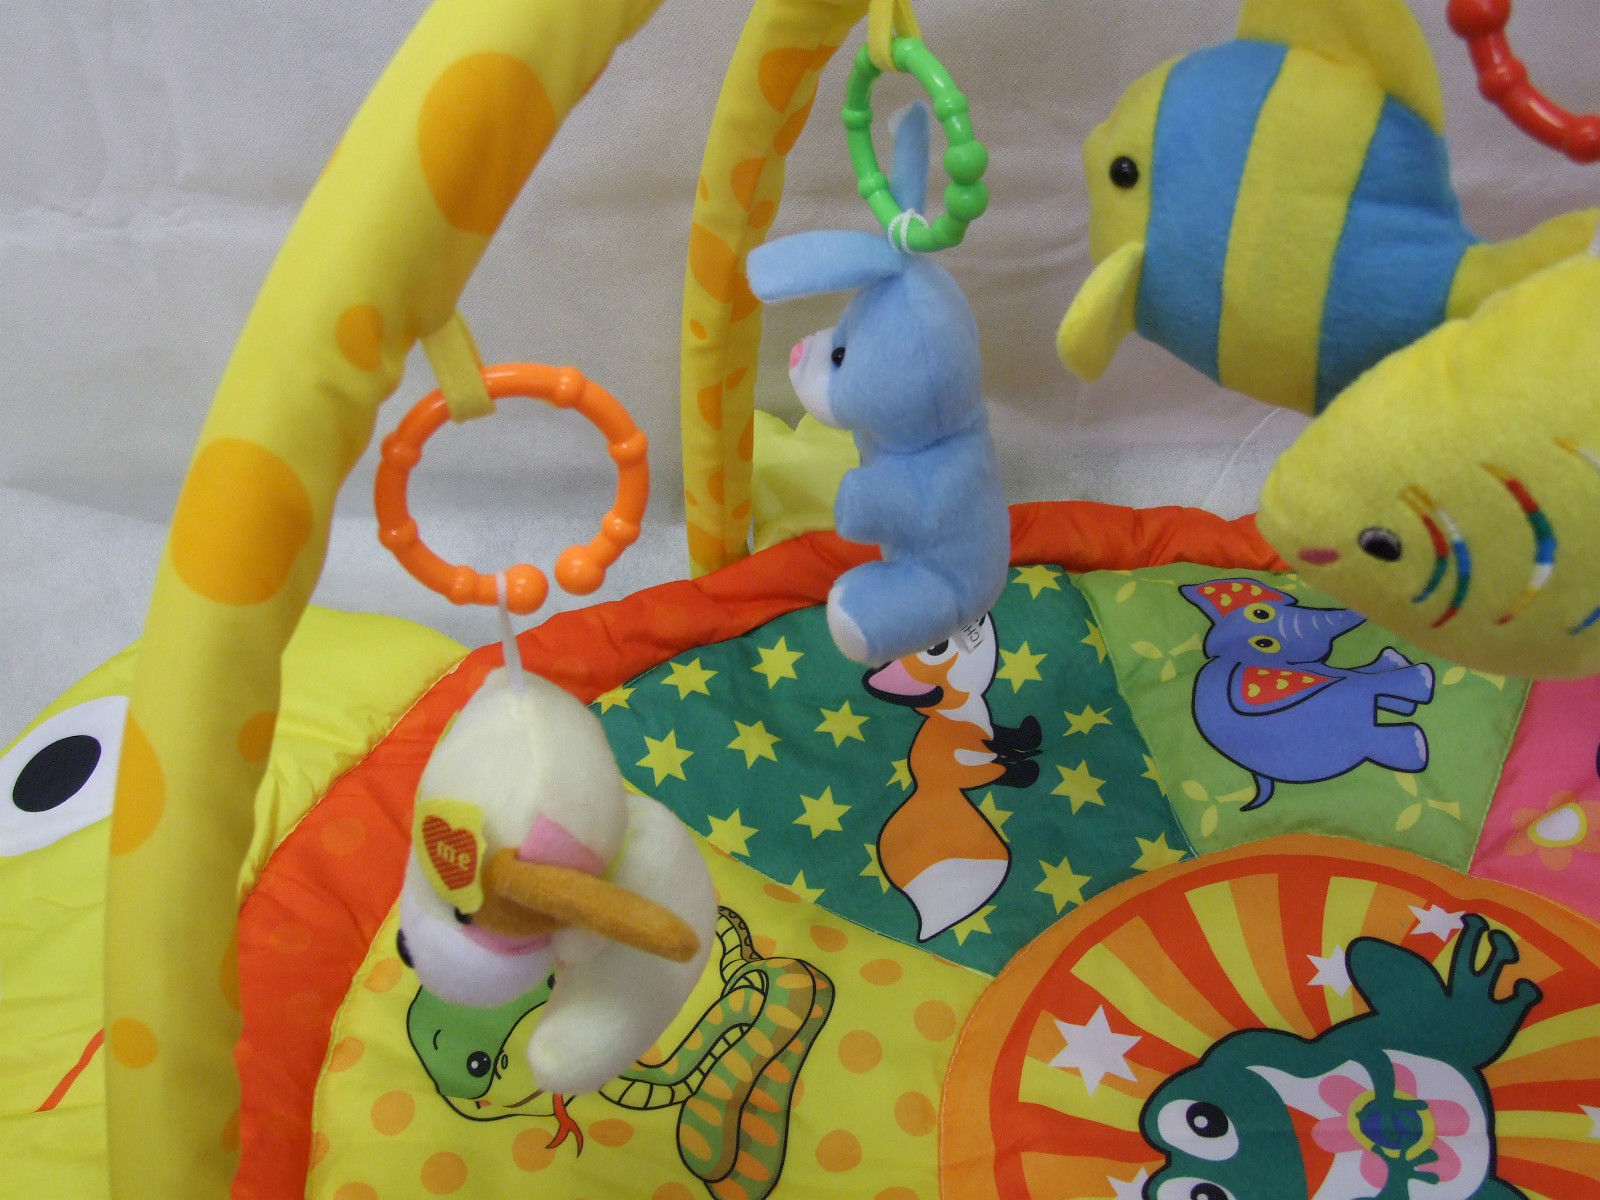 Babies Turtle Shape Soft Play Gym With Plush Dangle  Activity Baby Play Mat